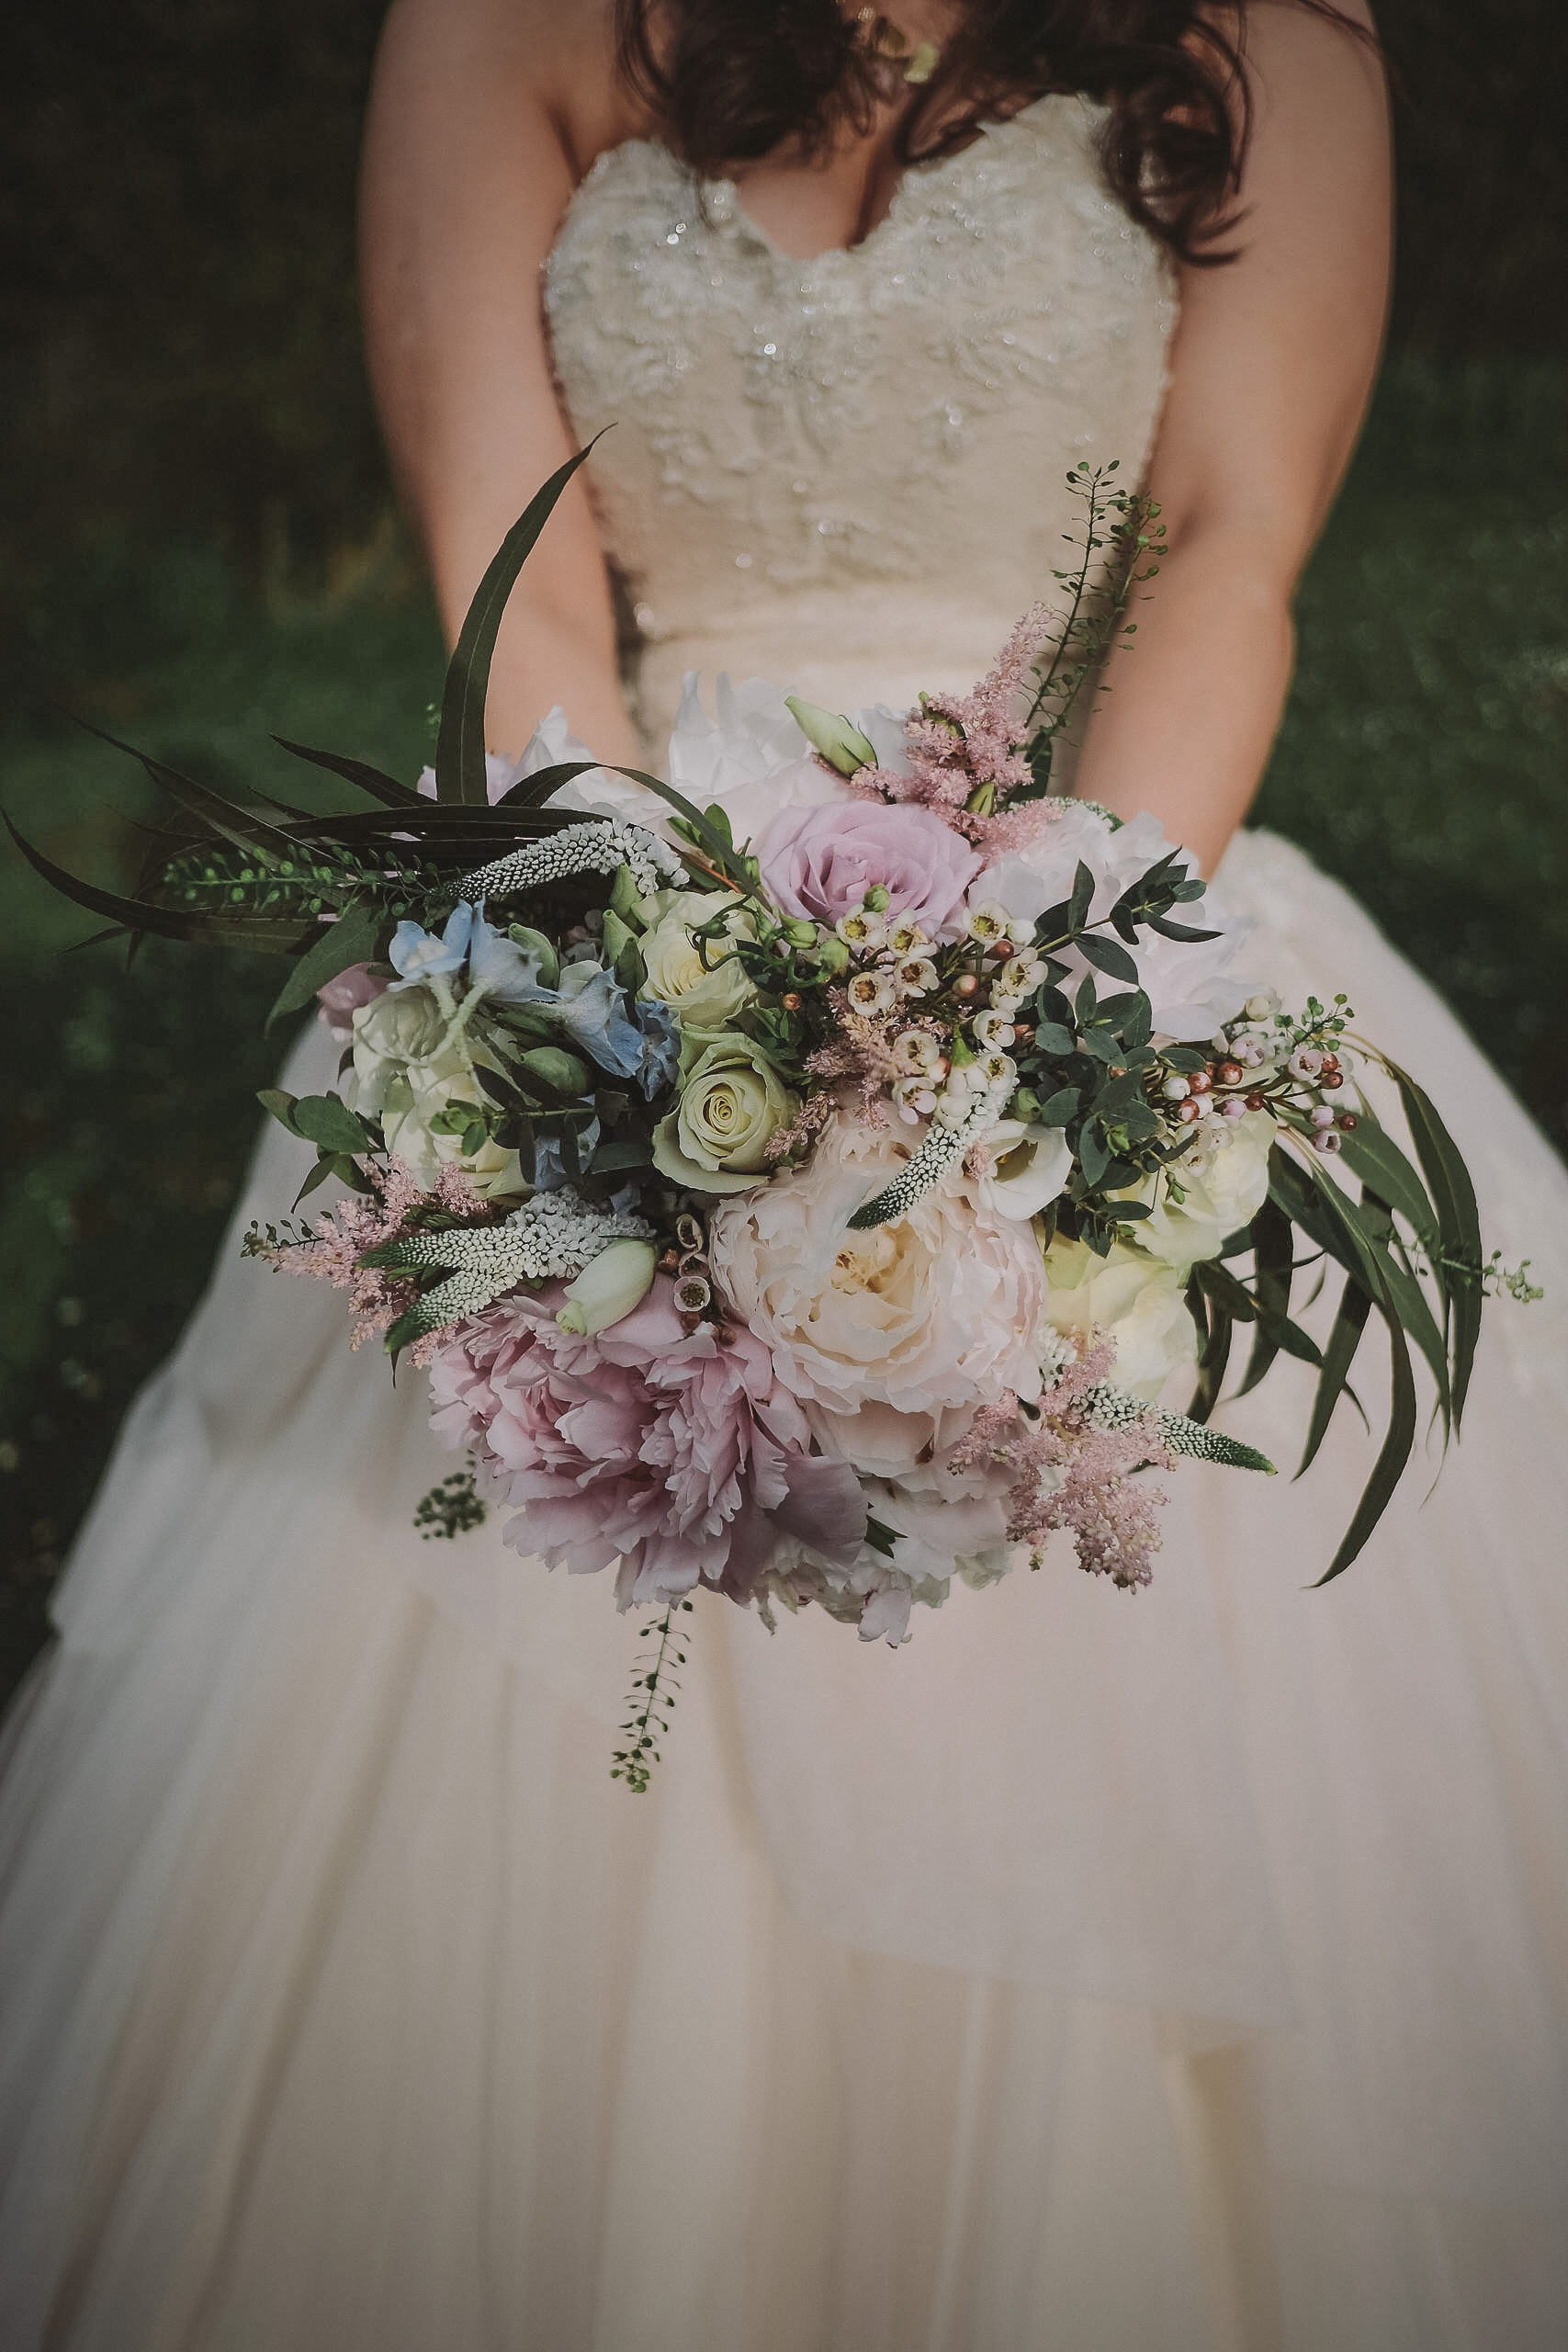 A close up of the bride holding the bridal bouquet at Newton Hall Northumberland by Barry Forshaw